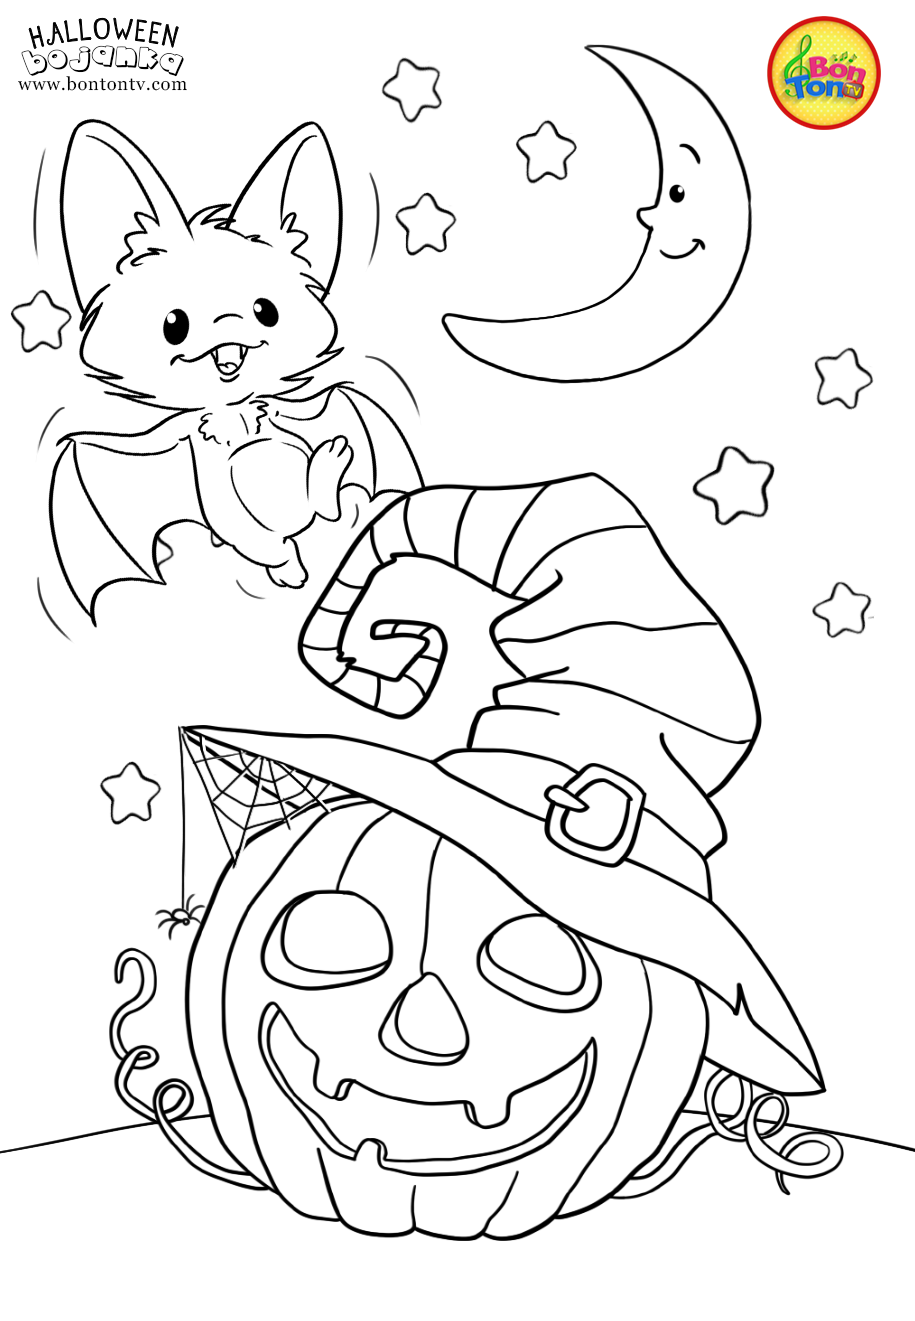 Halloween Coloring Pages for Kids - Free Preschool Printables